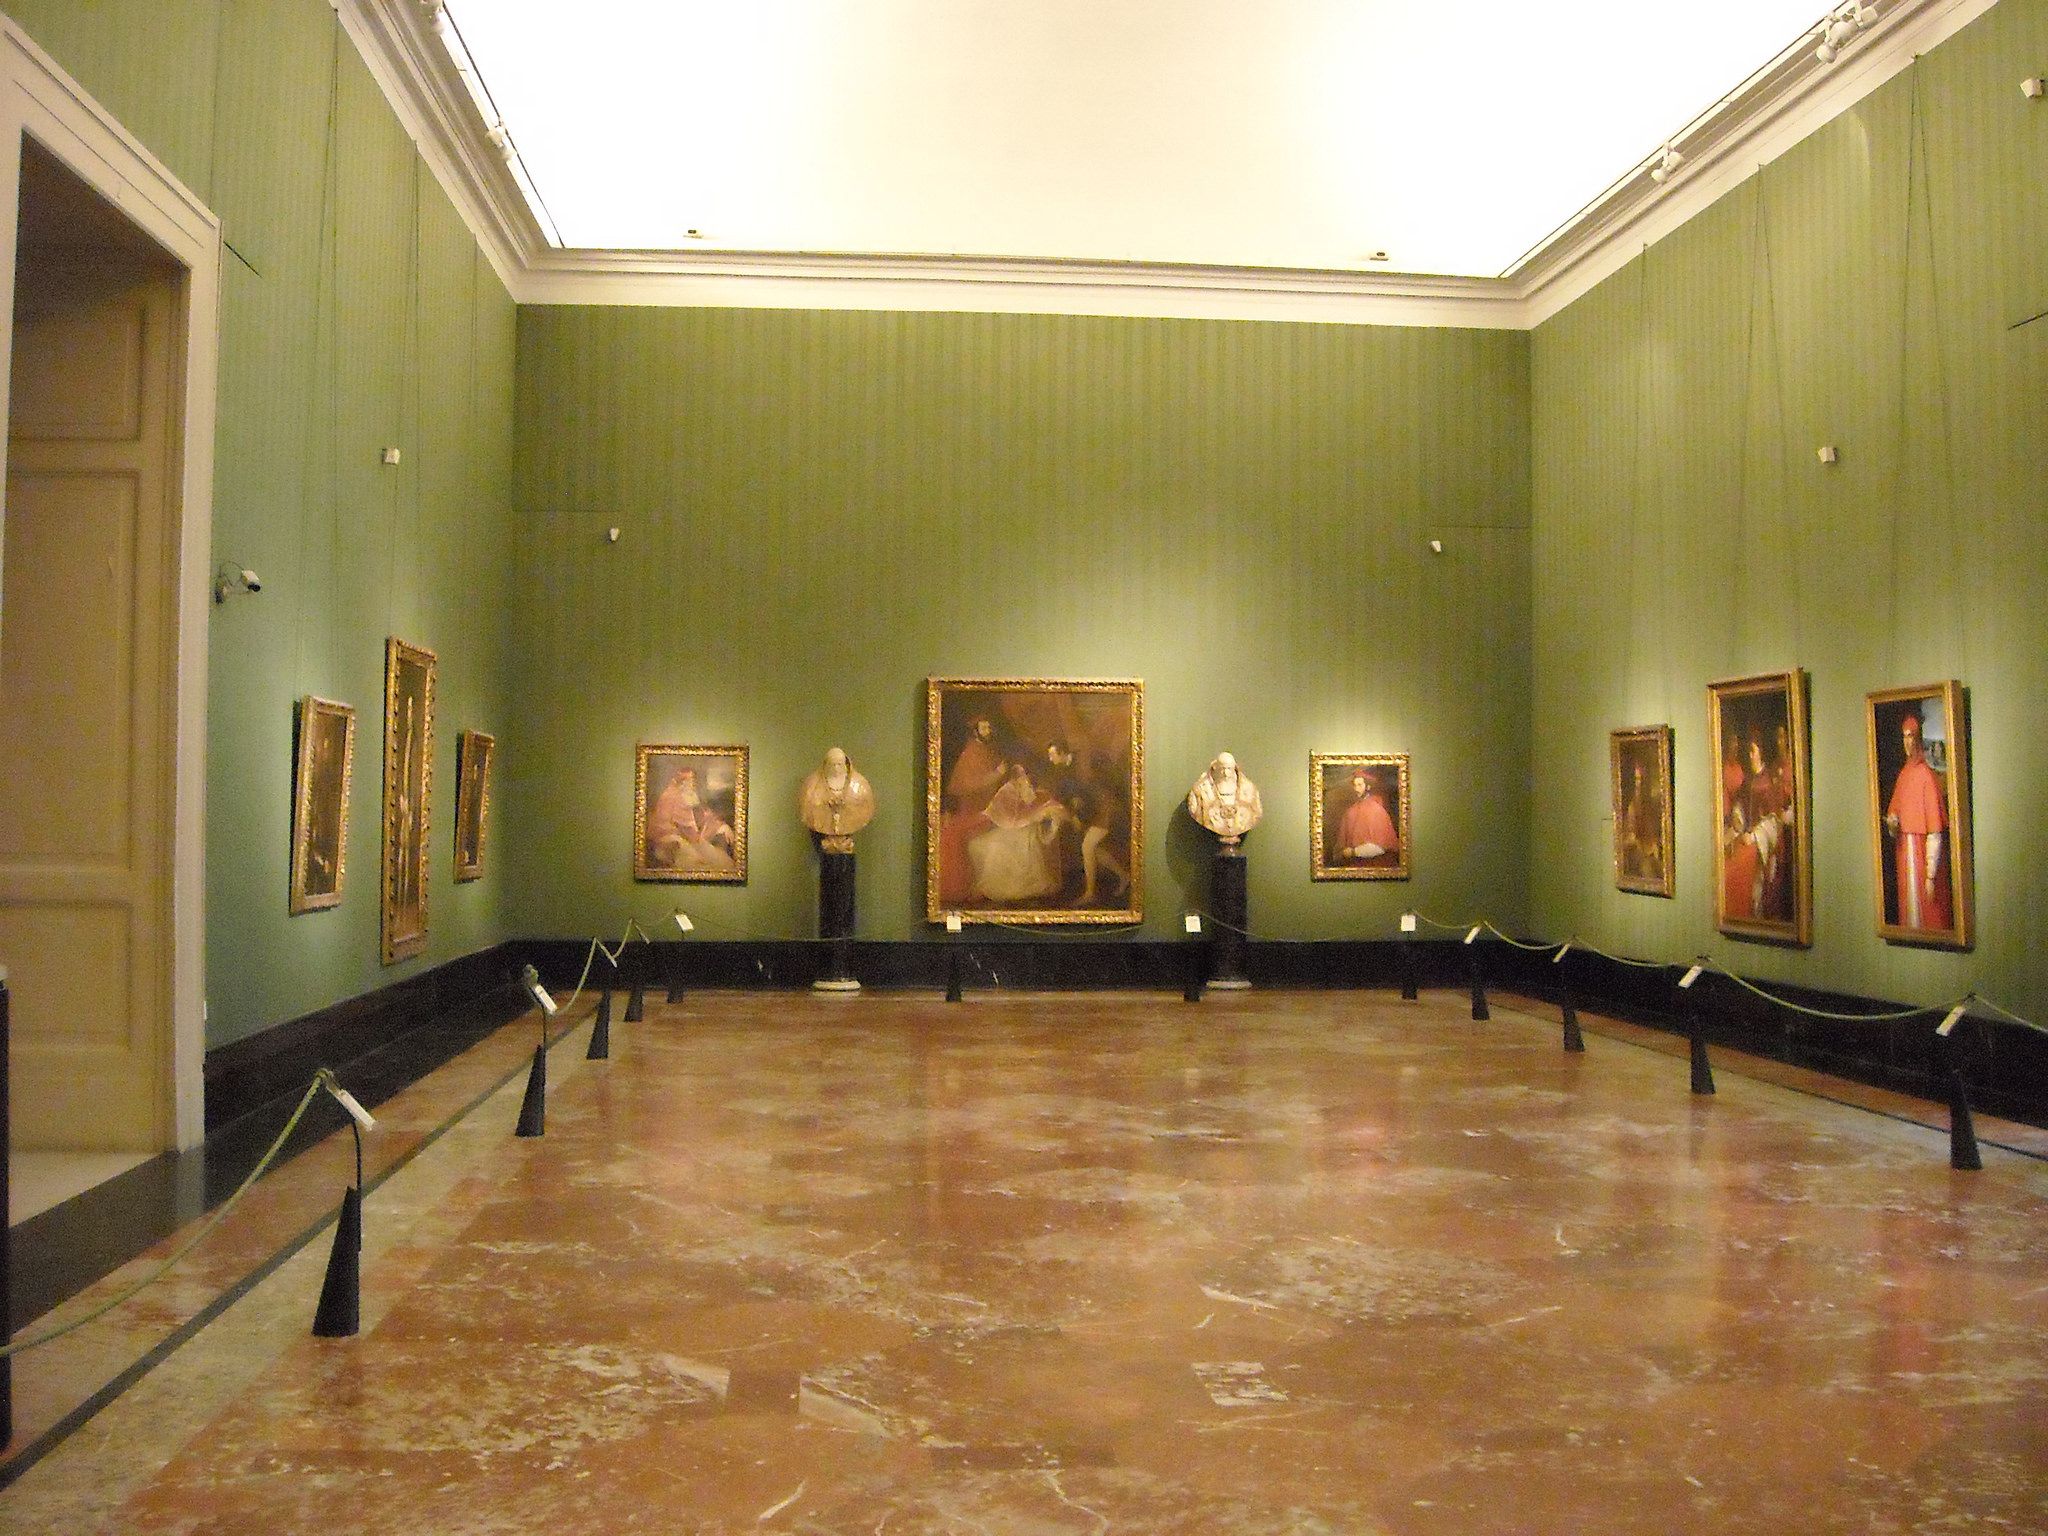 """Titian Hall at Capodimonte Museum in Naples"" by Carlo Raso"